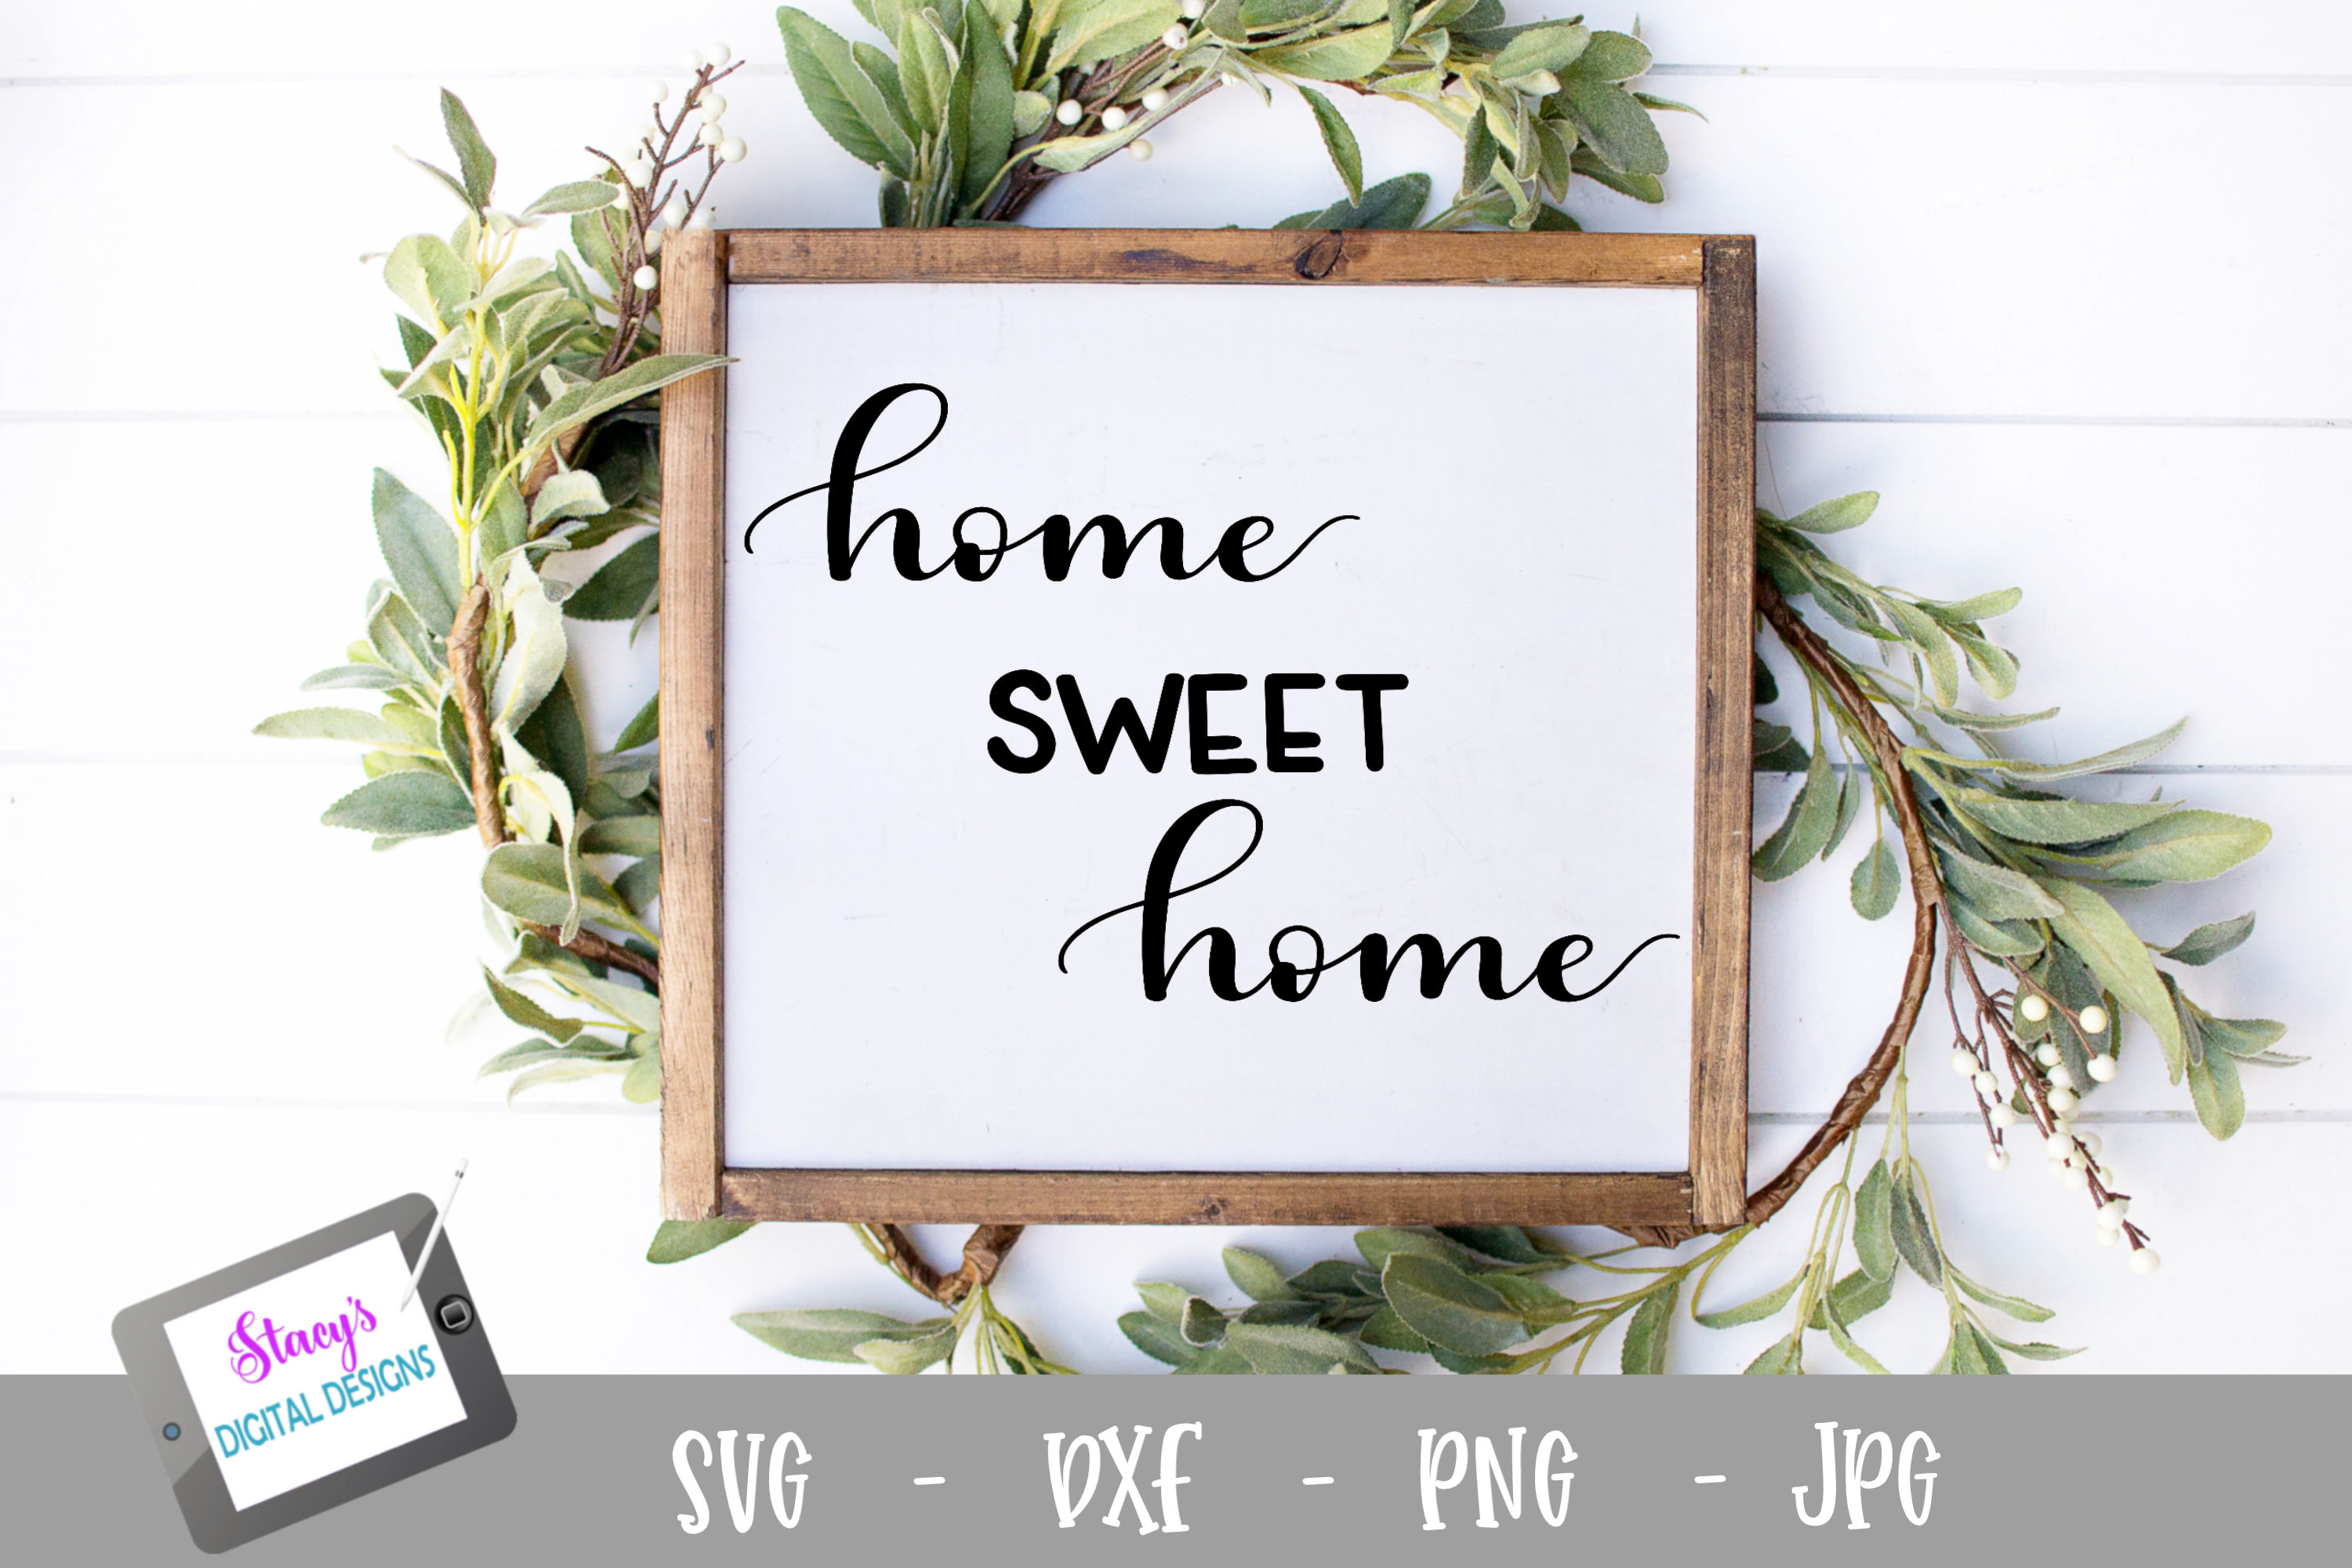 Download Free Home Sweet Home Svg Handlettered Graphic By for Cricut Explore, Silhouette and other cutting machines.